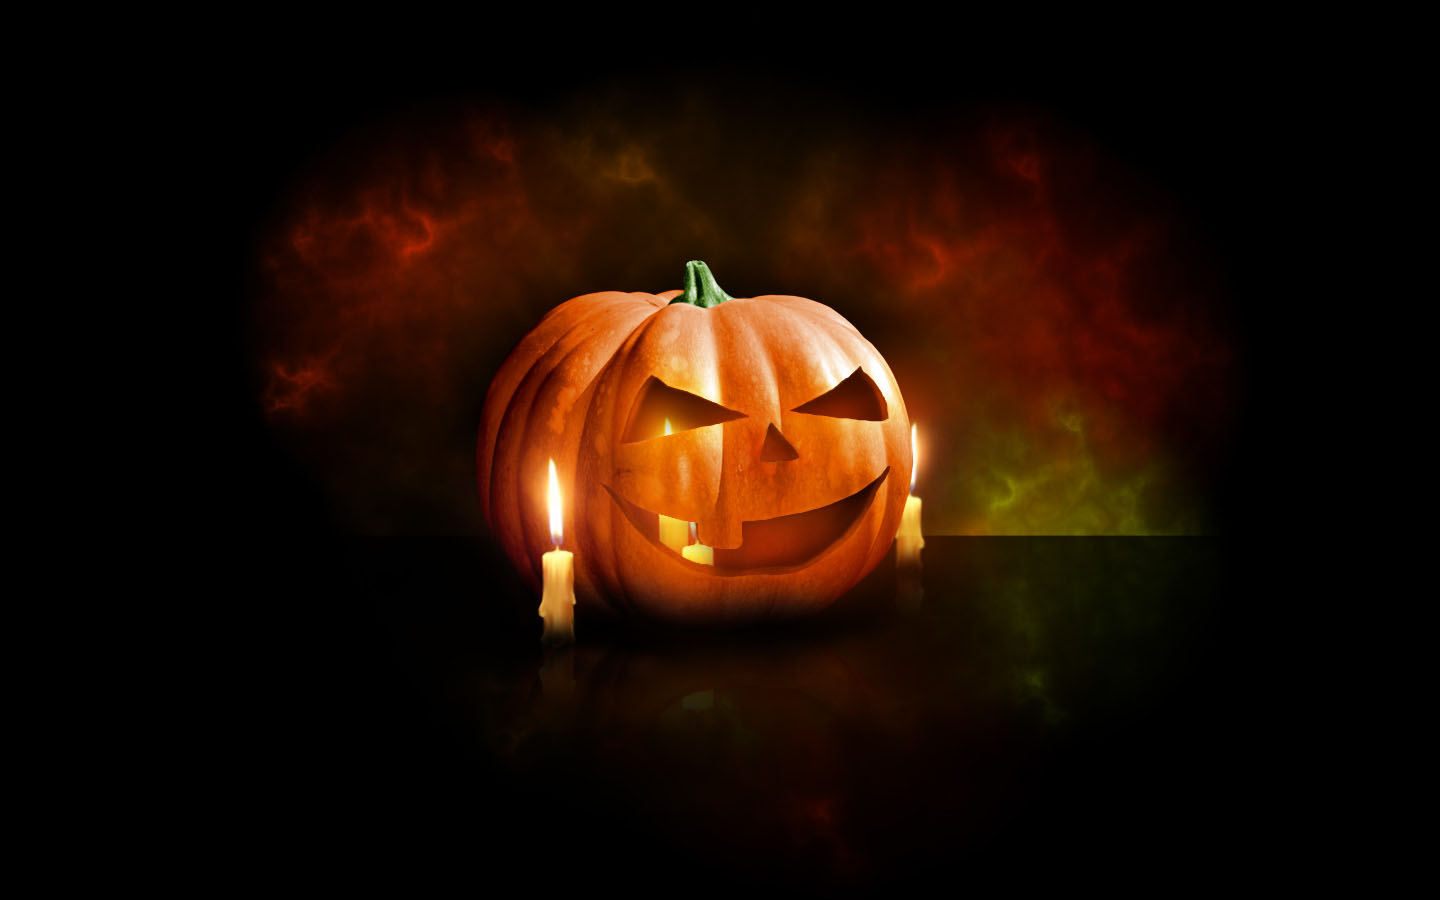 Helloween pumpkin picture